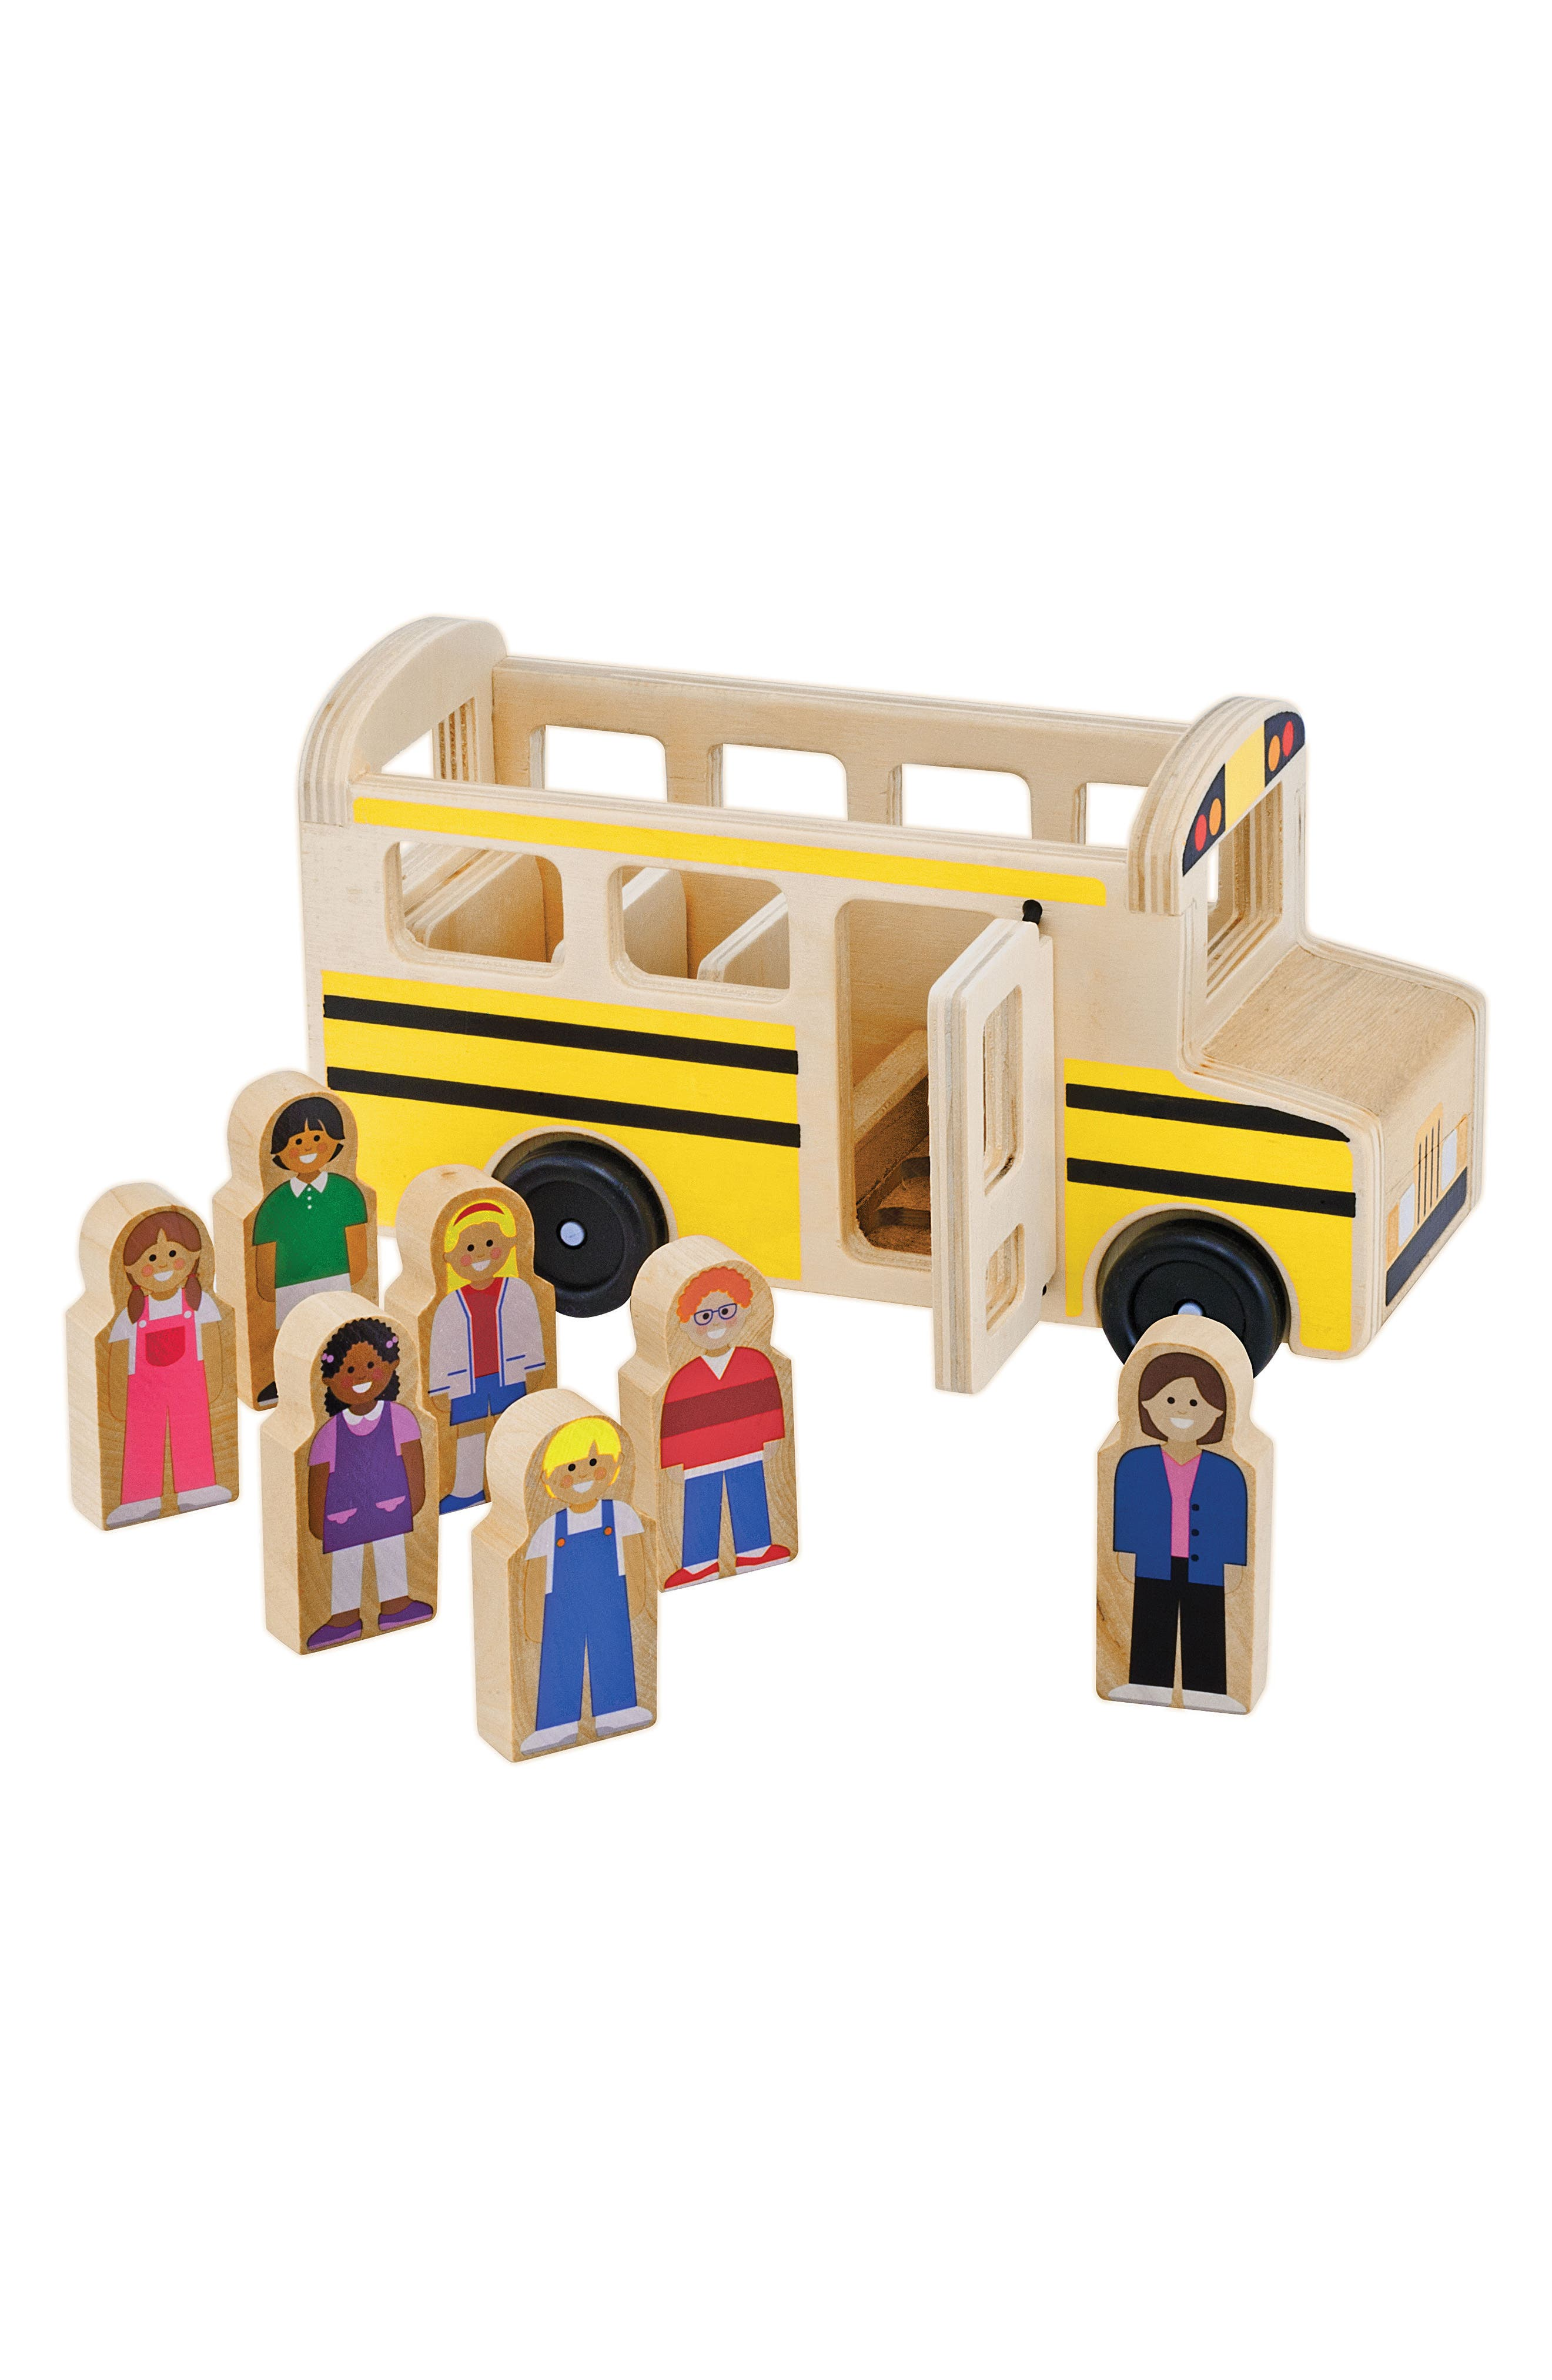 Classic School Bus Wooden Play Set,                             Main thumbnail 1, color,                             YELLOW